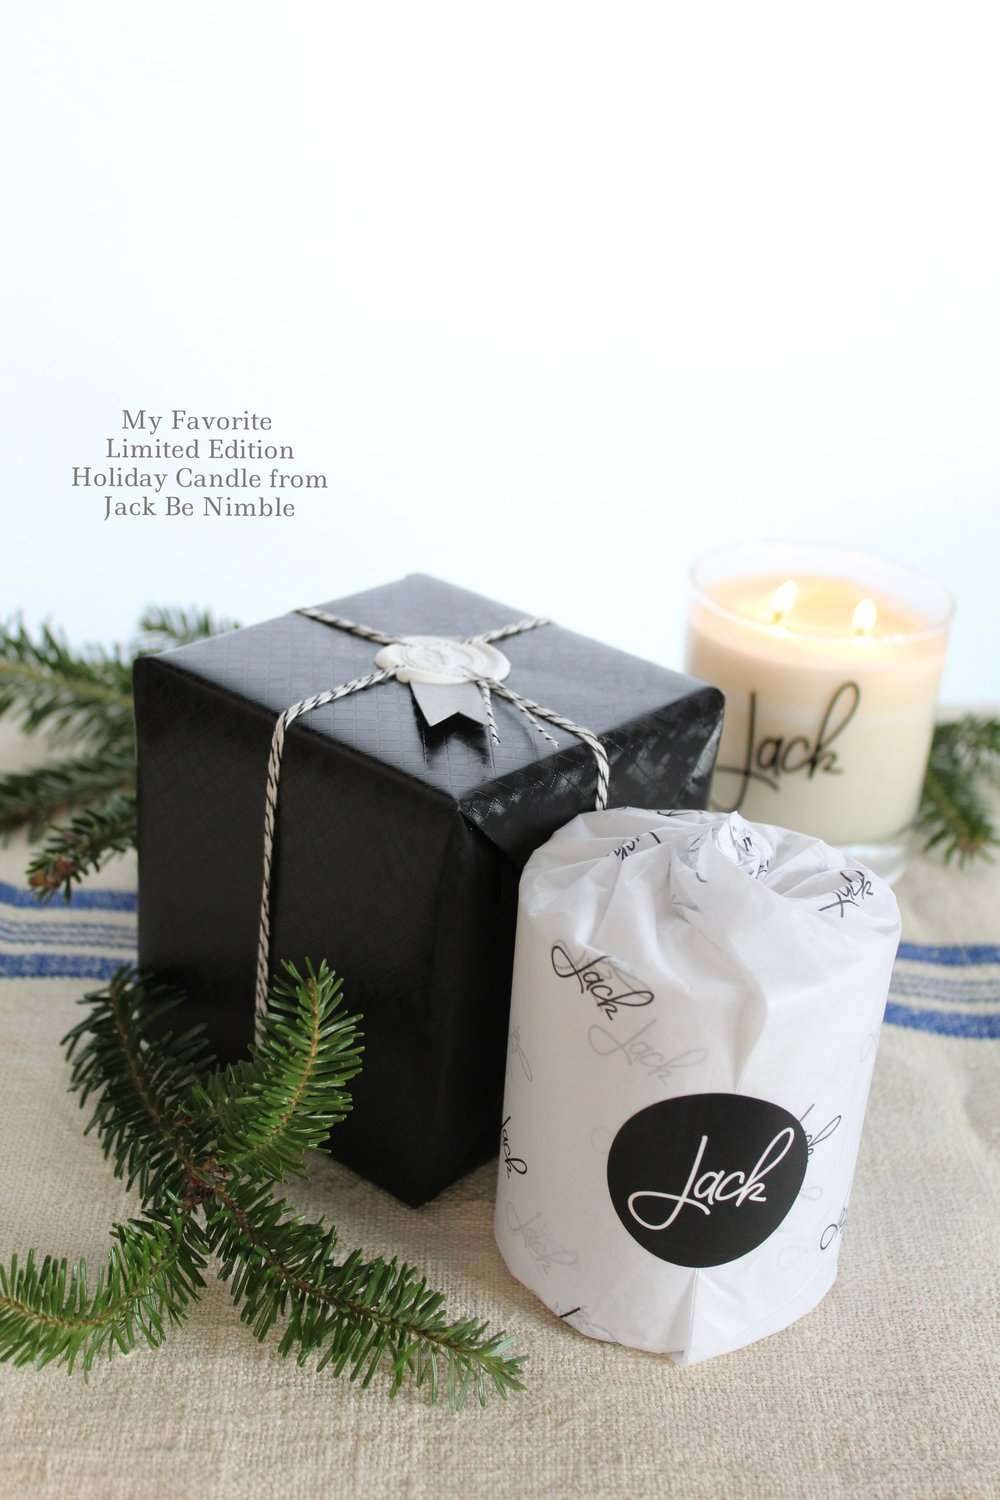 jack candle holiday gift guide.JPG